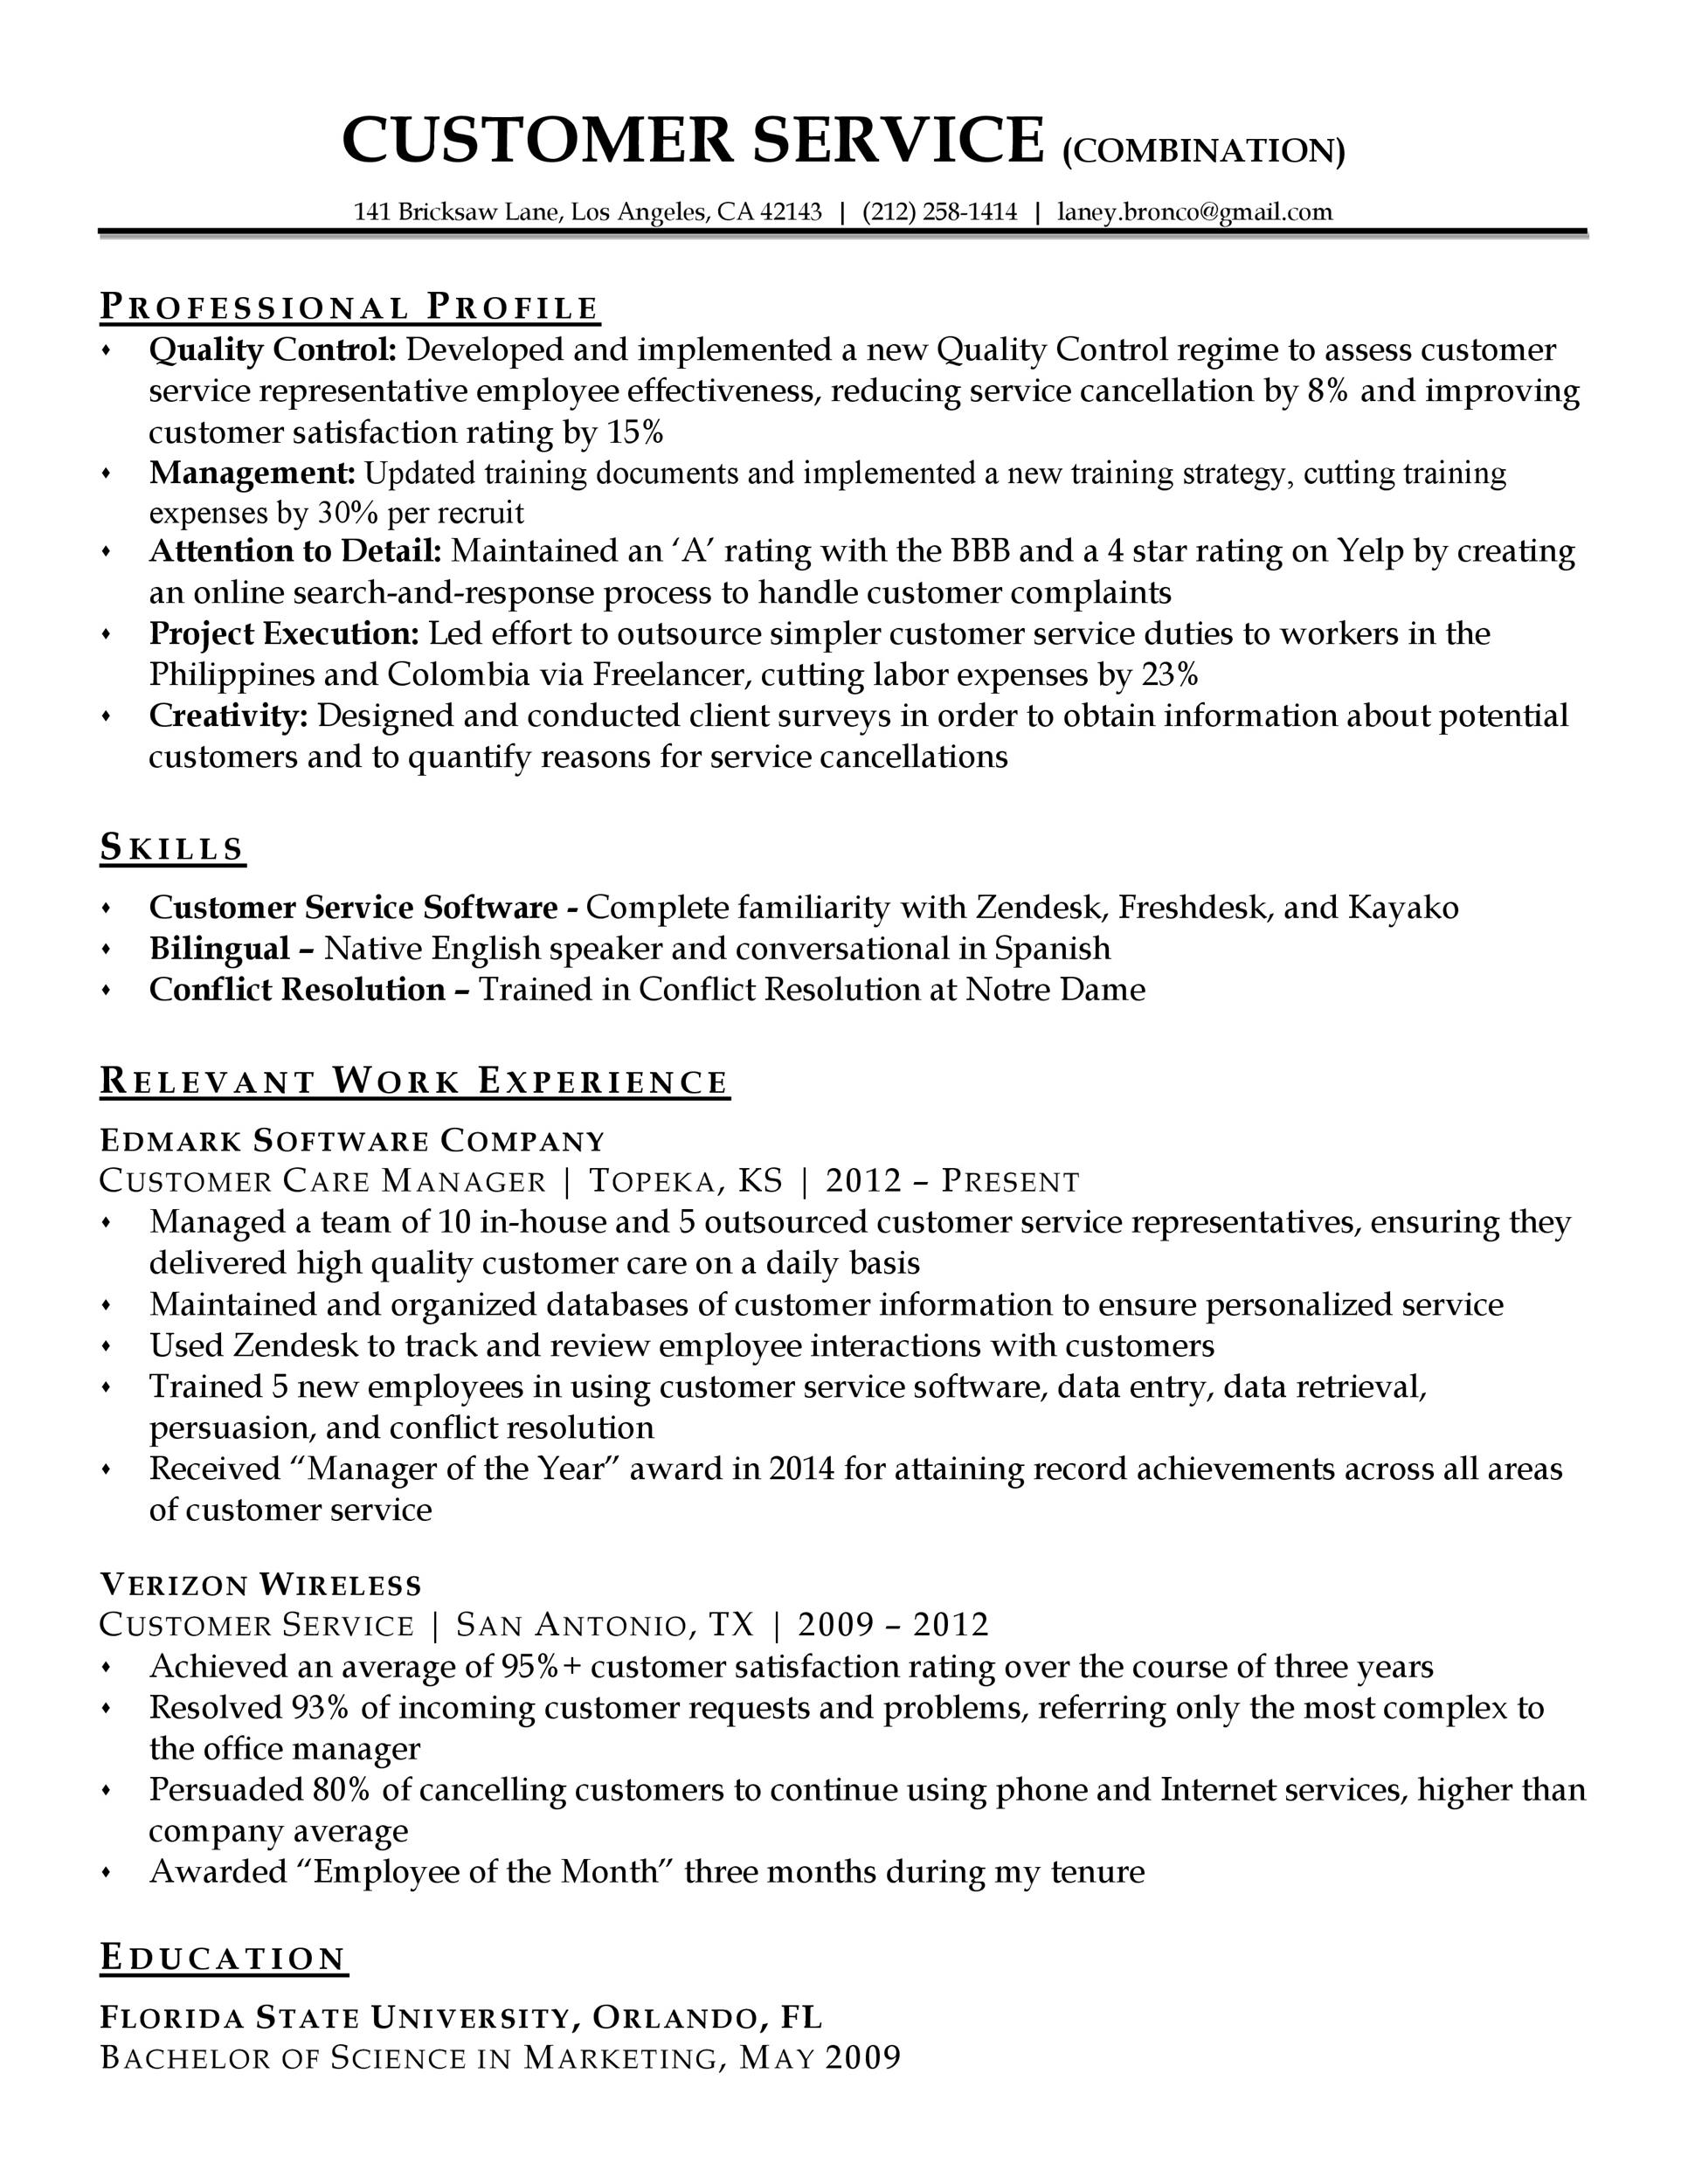 Free Customer Service Resume Template 01